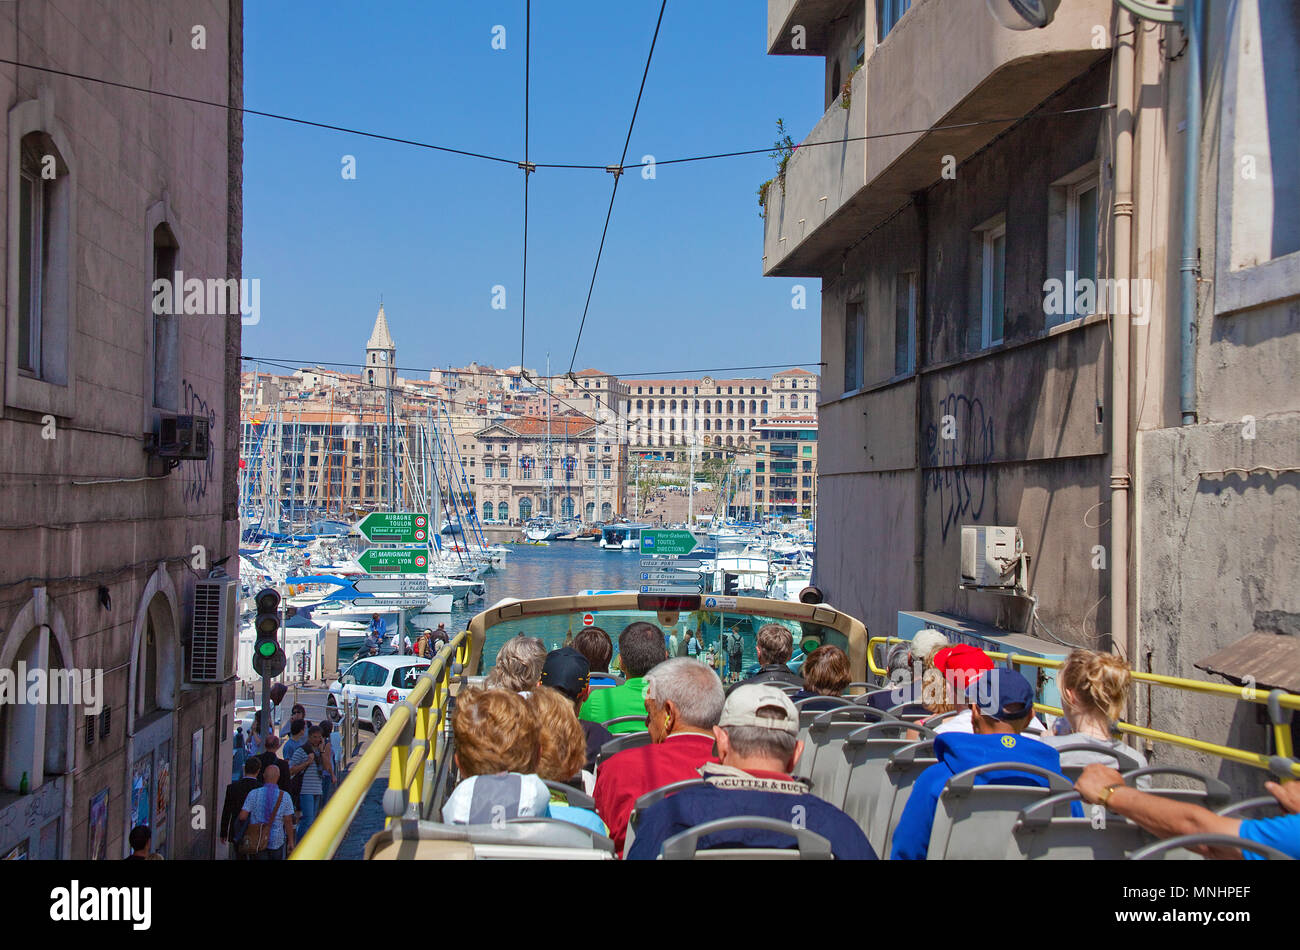 City tour, tourist in bus driving at narrow alley to the old harbour Vieux Port, Marseille, Bouches-du-Rhone, Provence-Alpes-Côte d'Azur, France - Stock Image